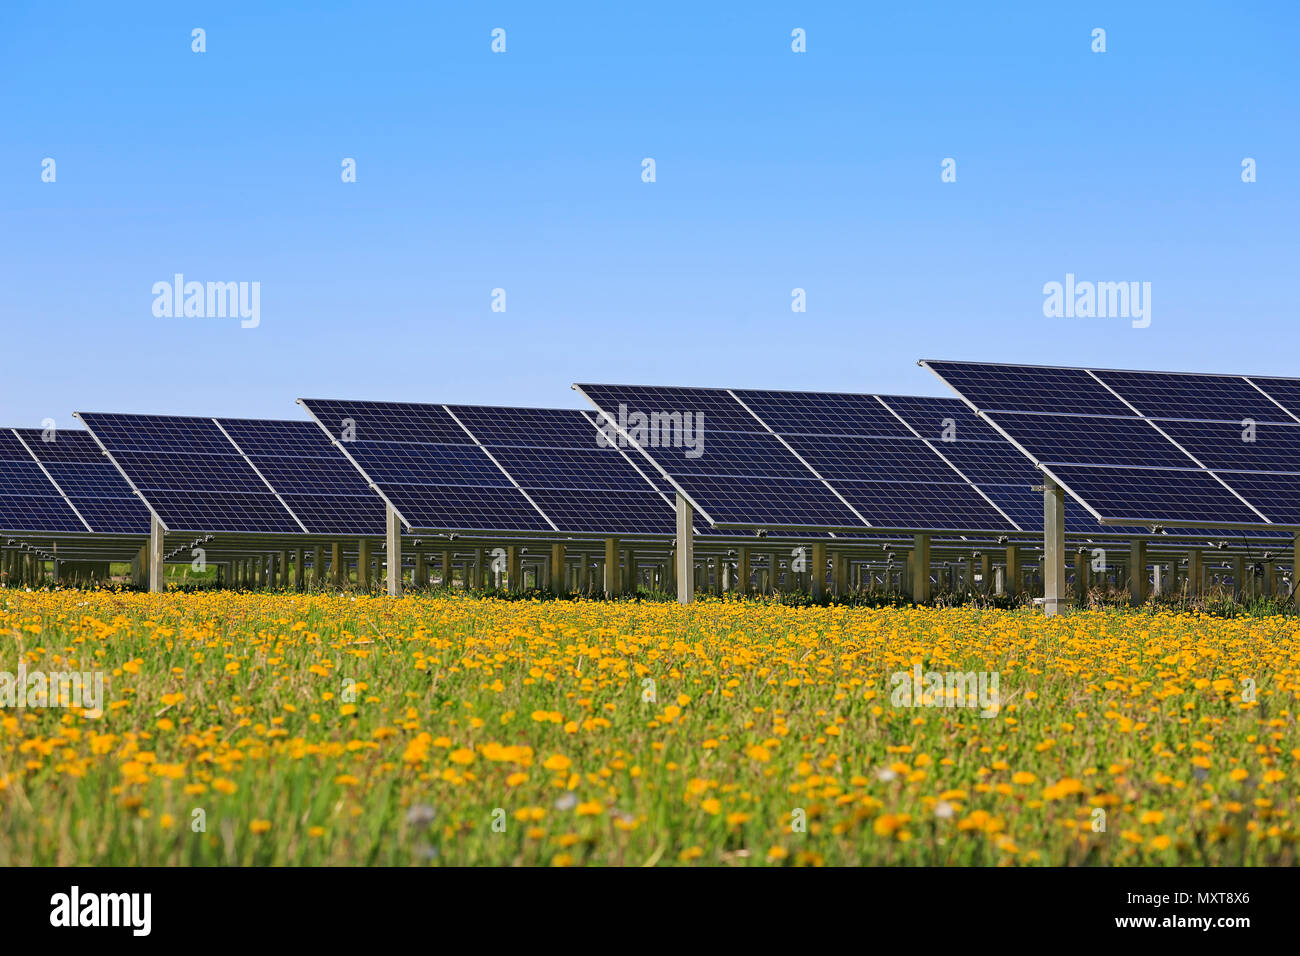 Solar panels on an open green field with yellow flowers and blue sky in the spring. Stock Photo